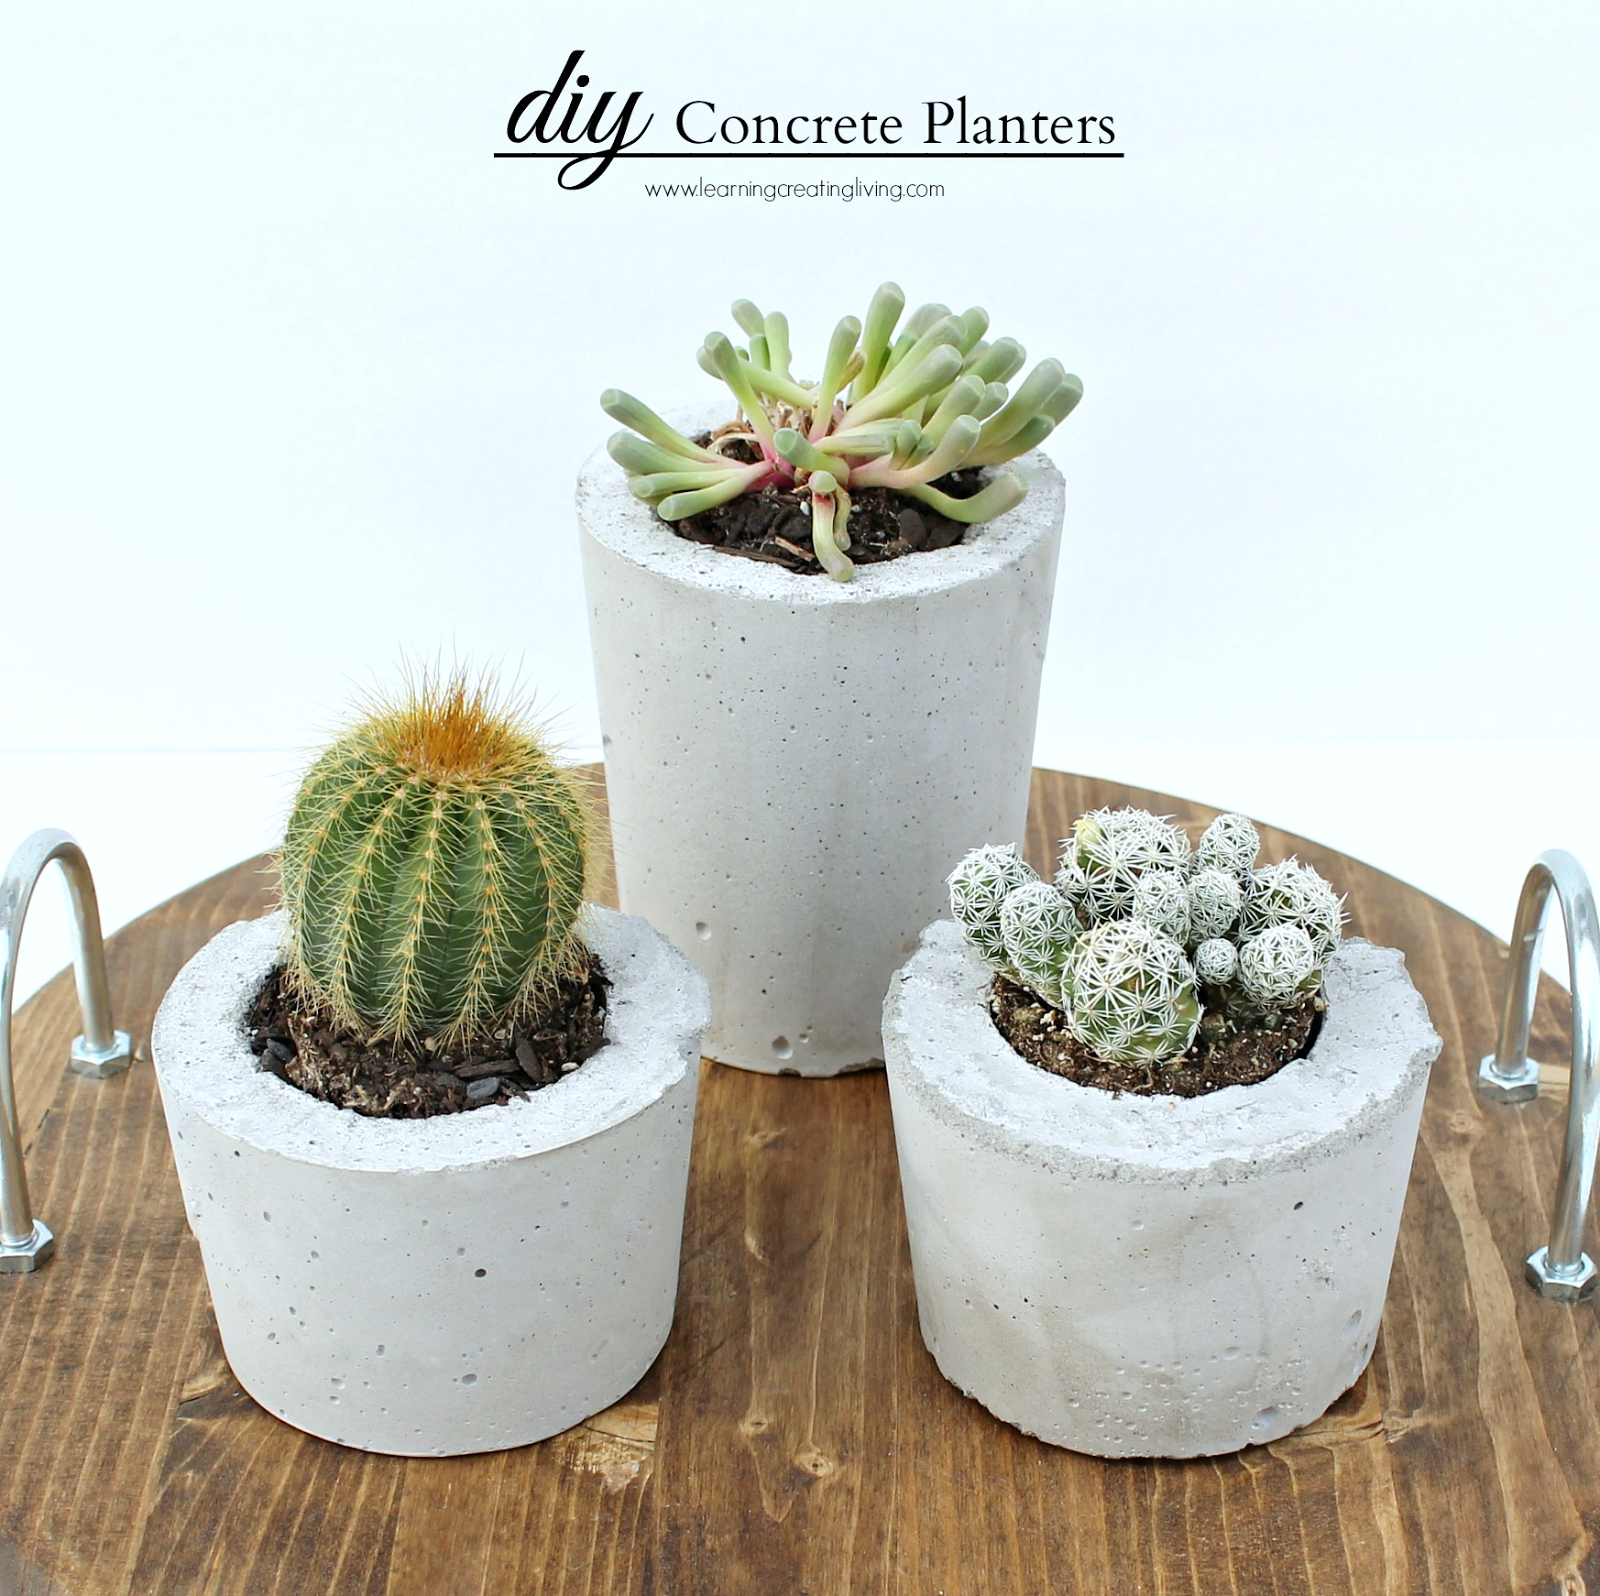 Concrete Planters Pictures, Photos, and Images for Facebook ...